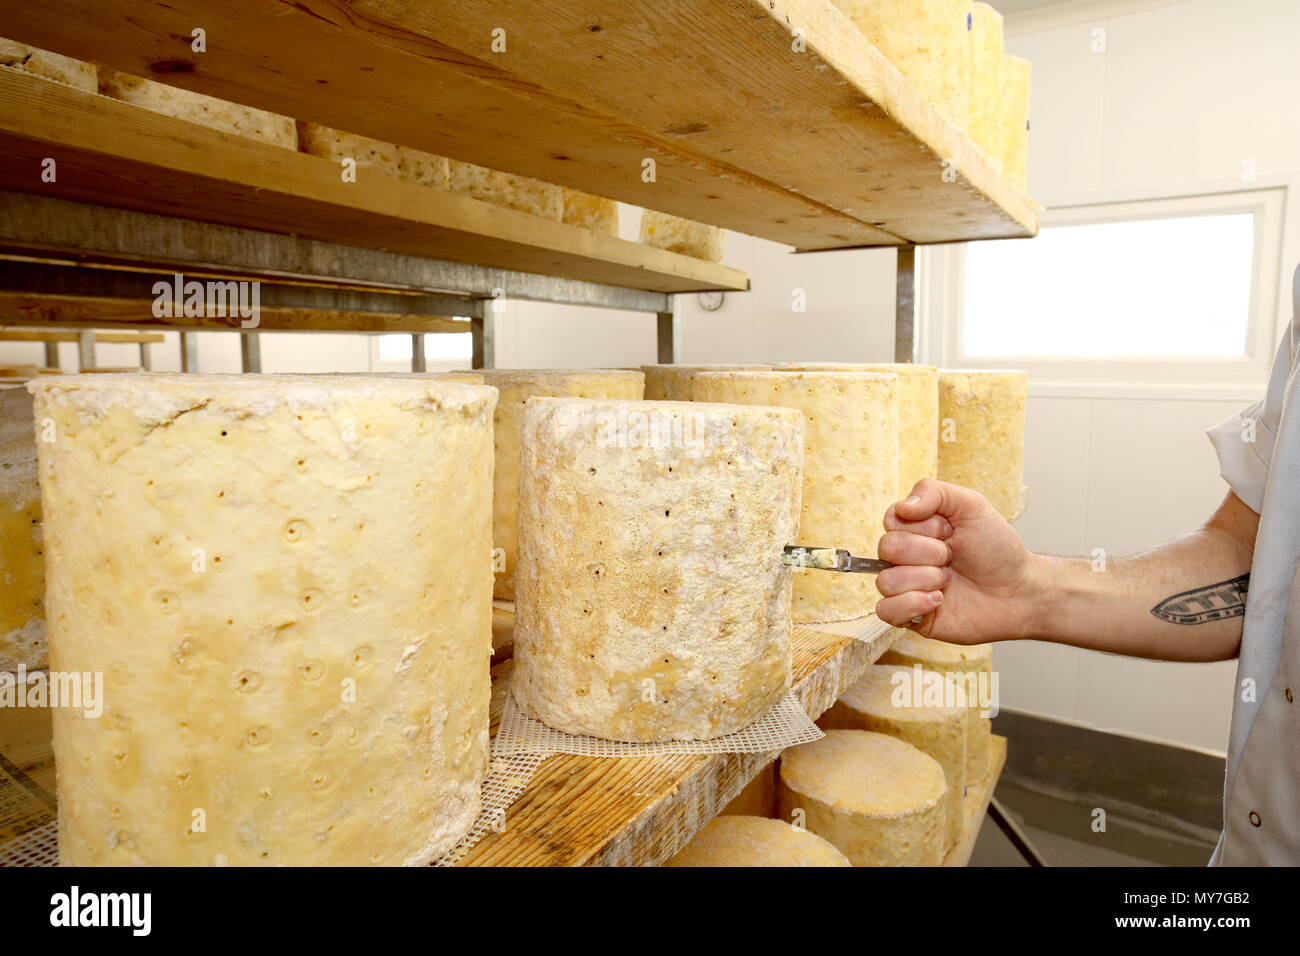 Cheese maker inspecting stilton cheese wheel by using a corer to check blue mould forming inside, close up of hand - Stock Image